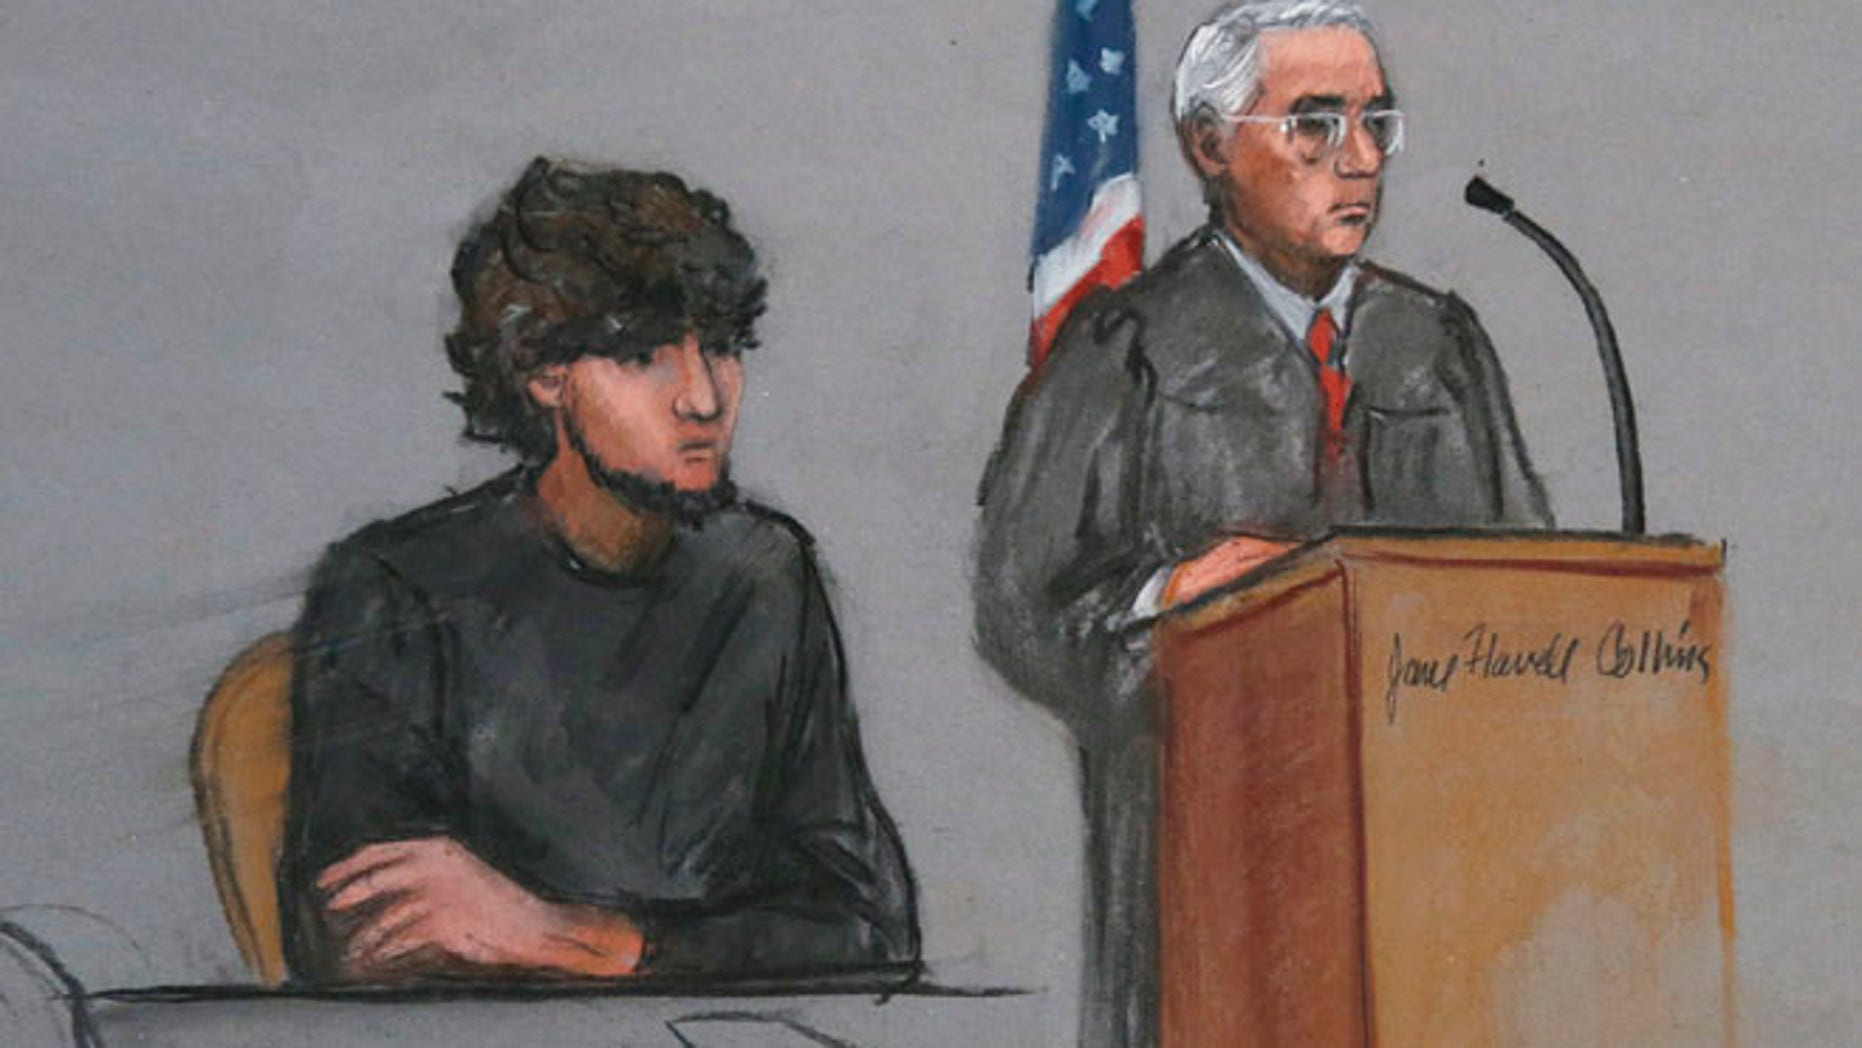 Jan. 5, 2015: In this file courtroom sketch, Boston Marathon bombing suspect Dzhokhar Tsarnaev, left, is depicted beside U.S. District Judge George O'Toole Jr., right, as O'Toole addresses a pool of potential jurors in a jury assembly room at the federal courthouse, in Boston.(AP)